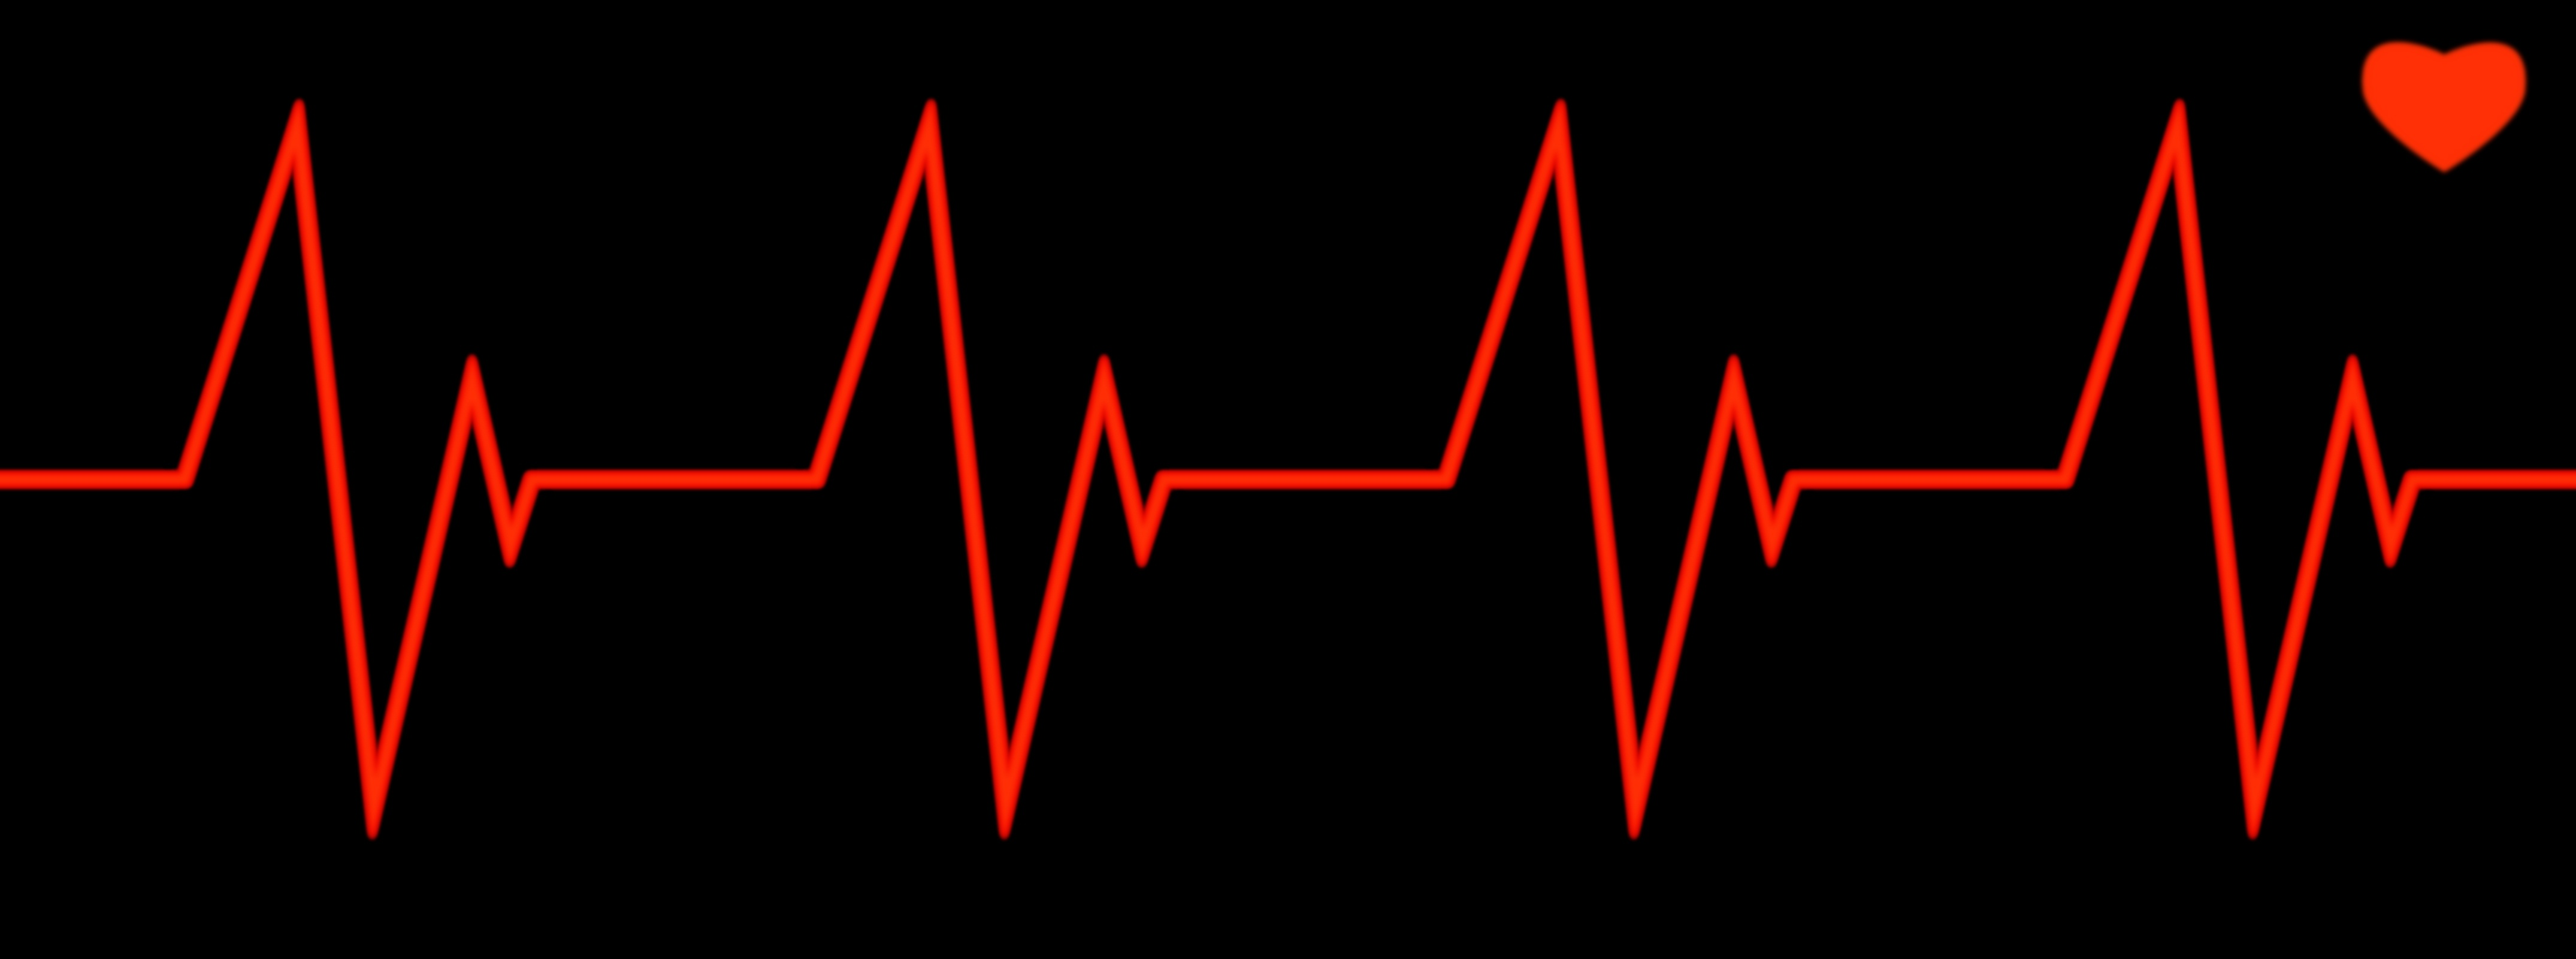 Heartbeat Line Clipart Black And White Heartbeat icons@Share on.